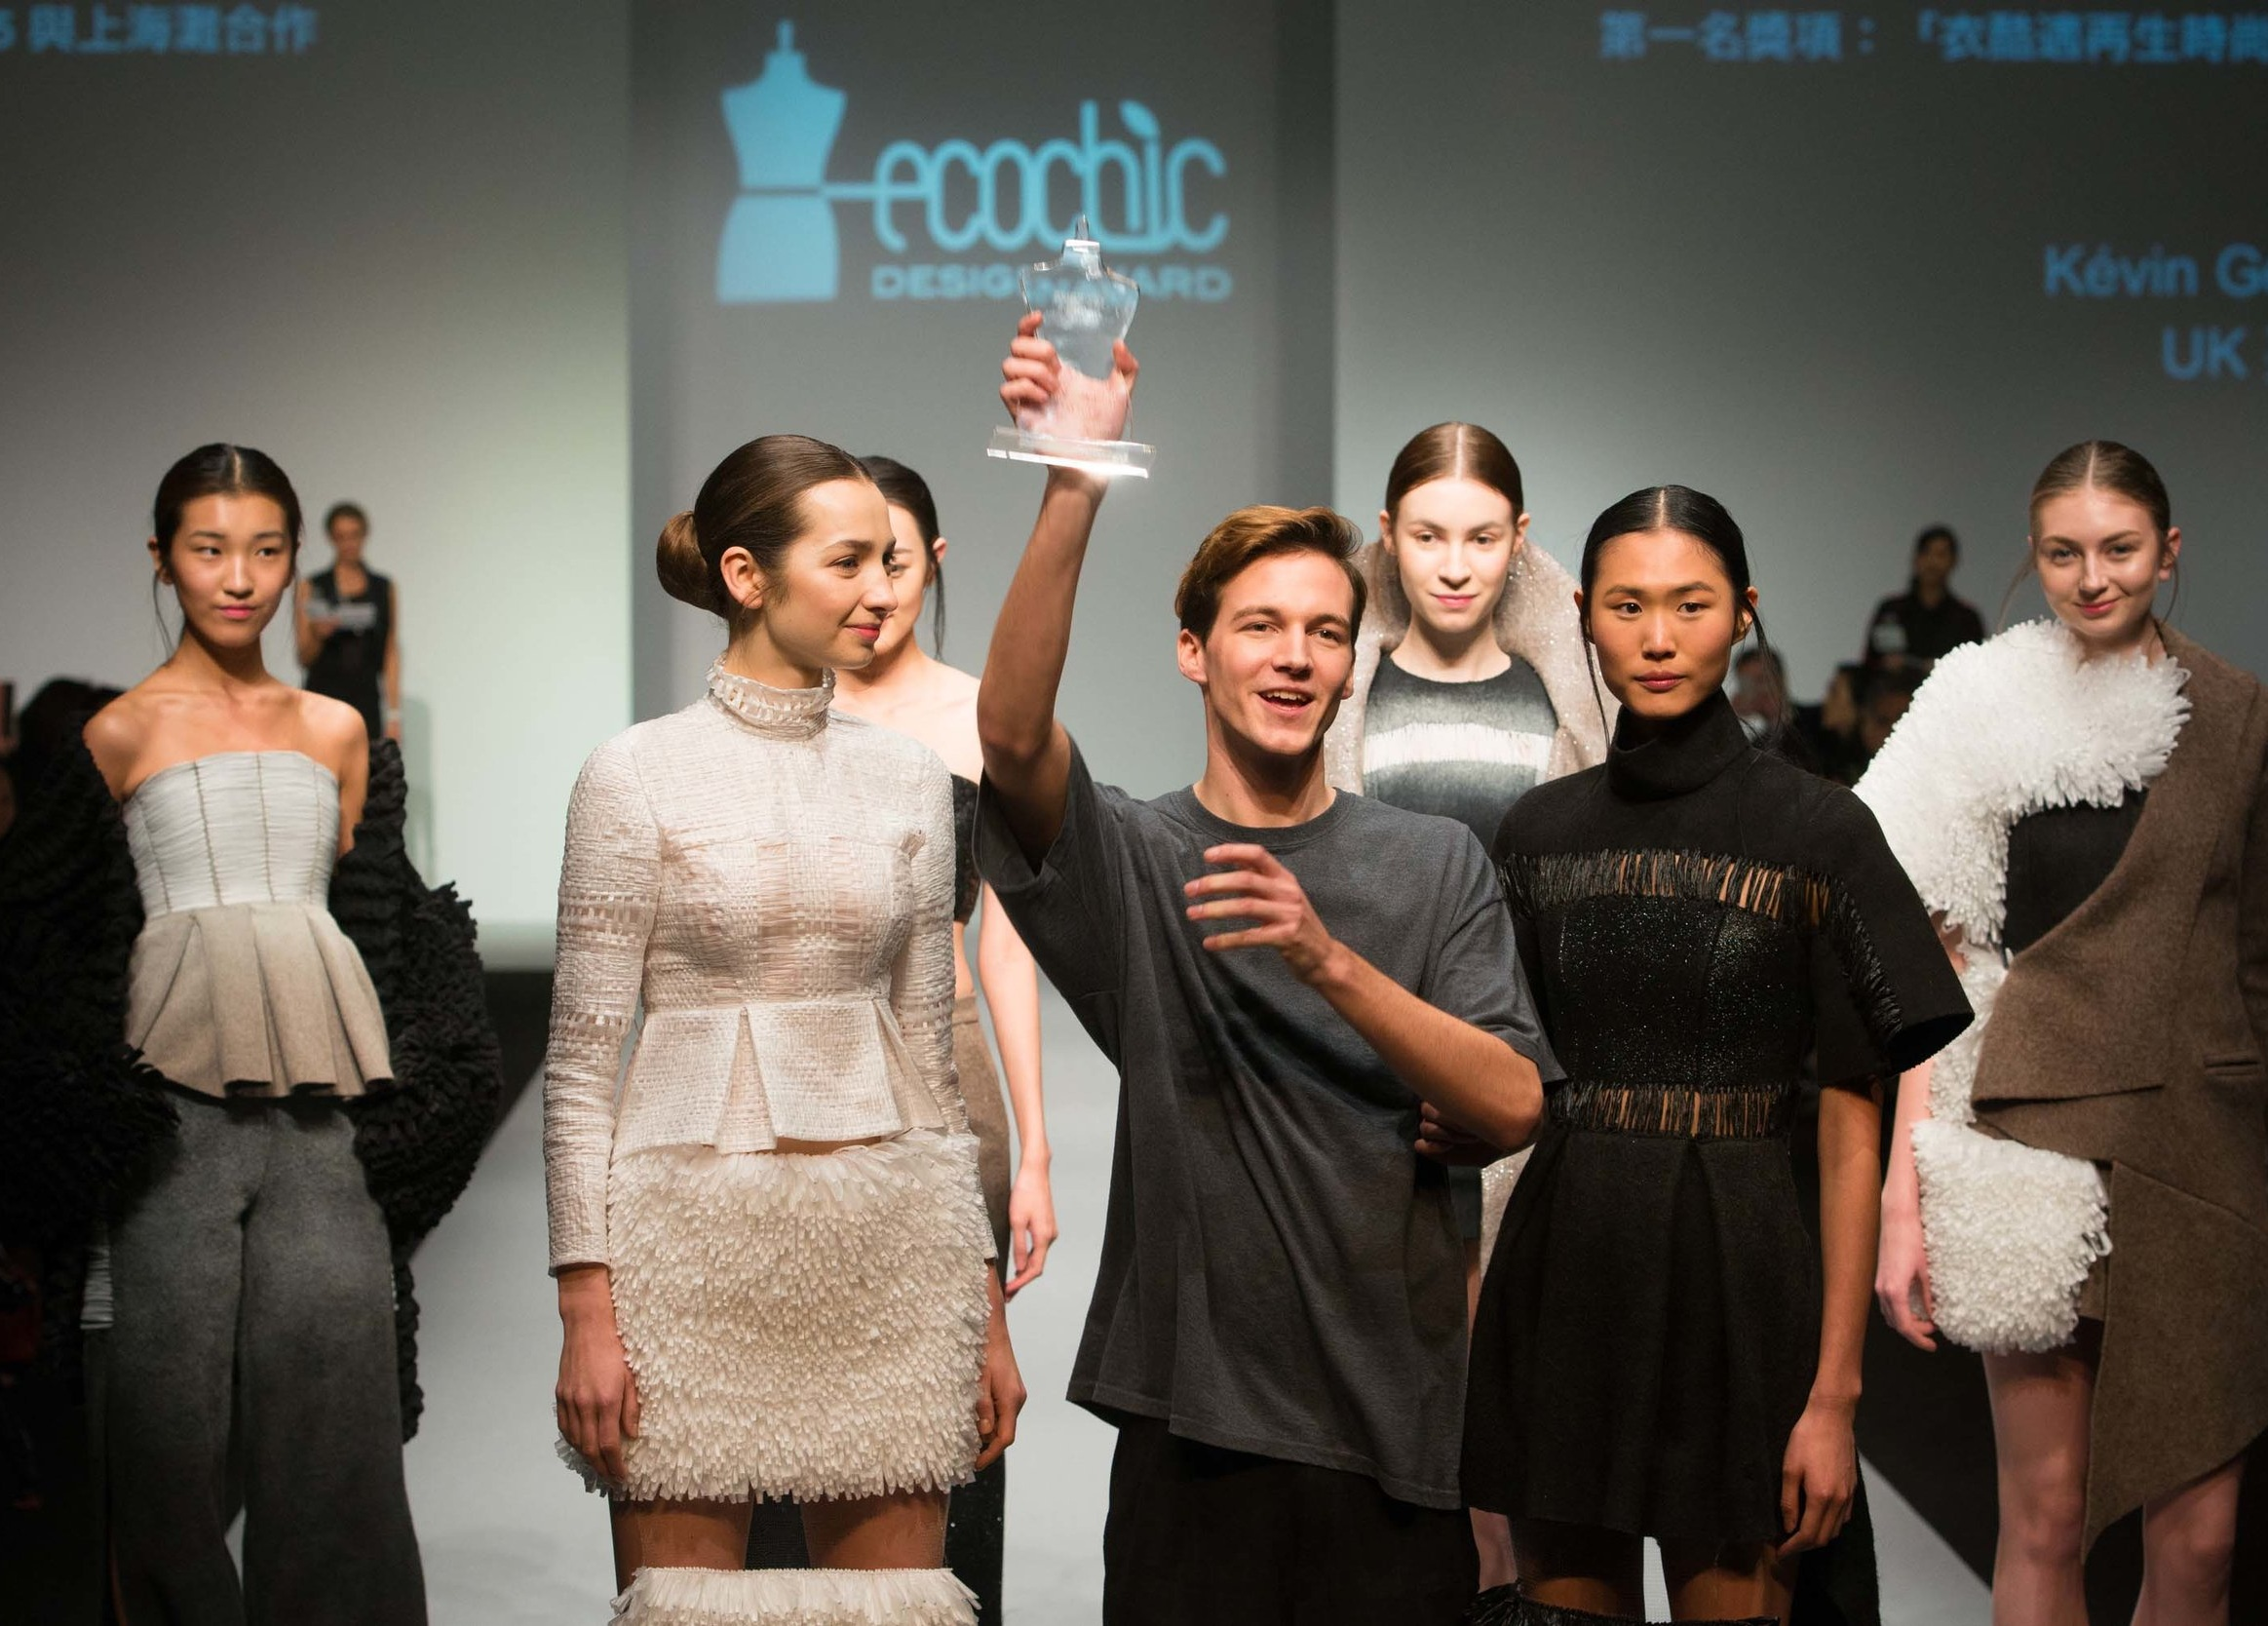 30_the-first-prize-the-ecochic-design-award-2014_15-in-partnership-with-shanghai-tang-winner-kevin-germanier.jpg